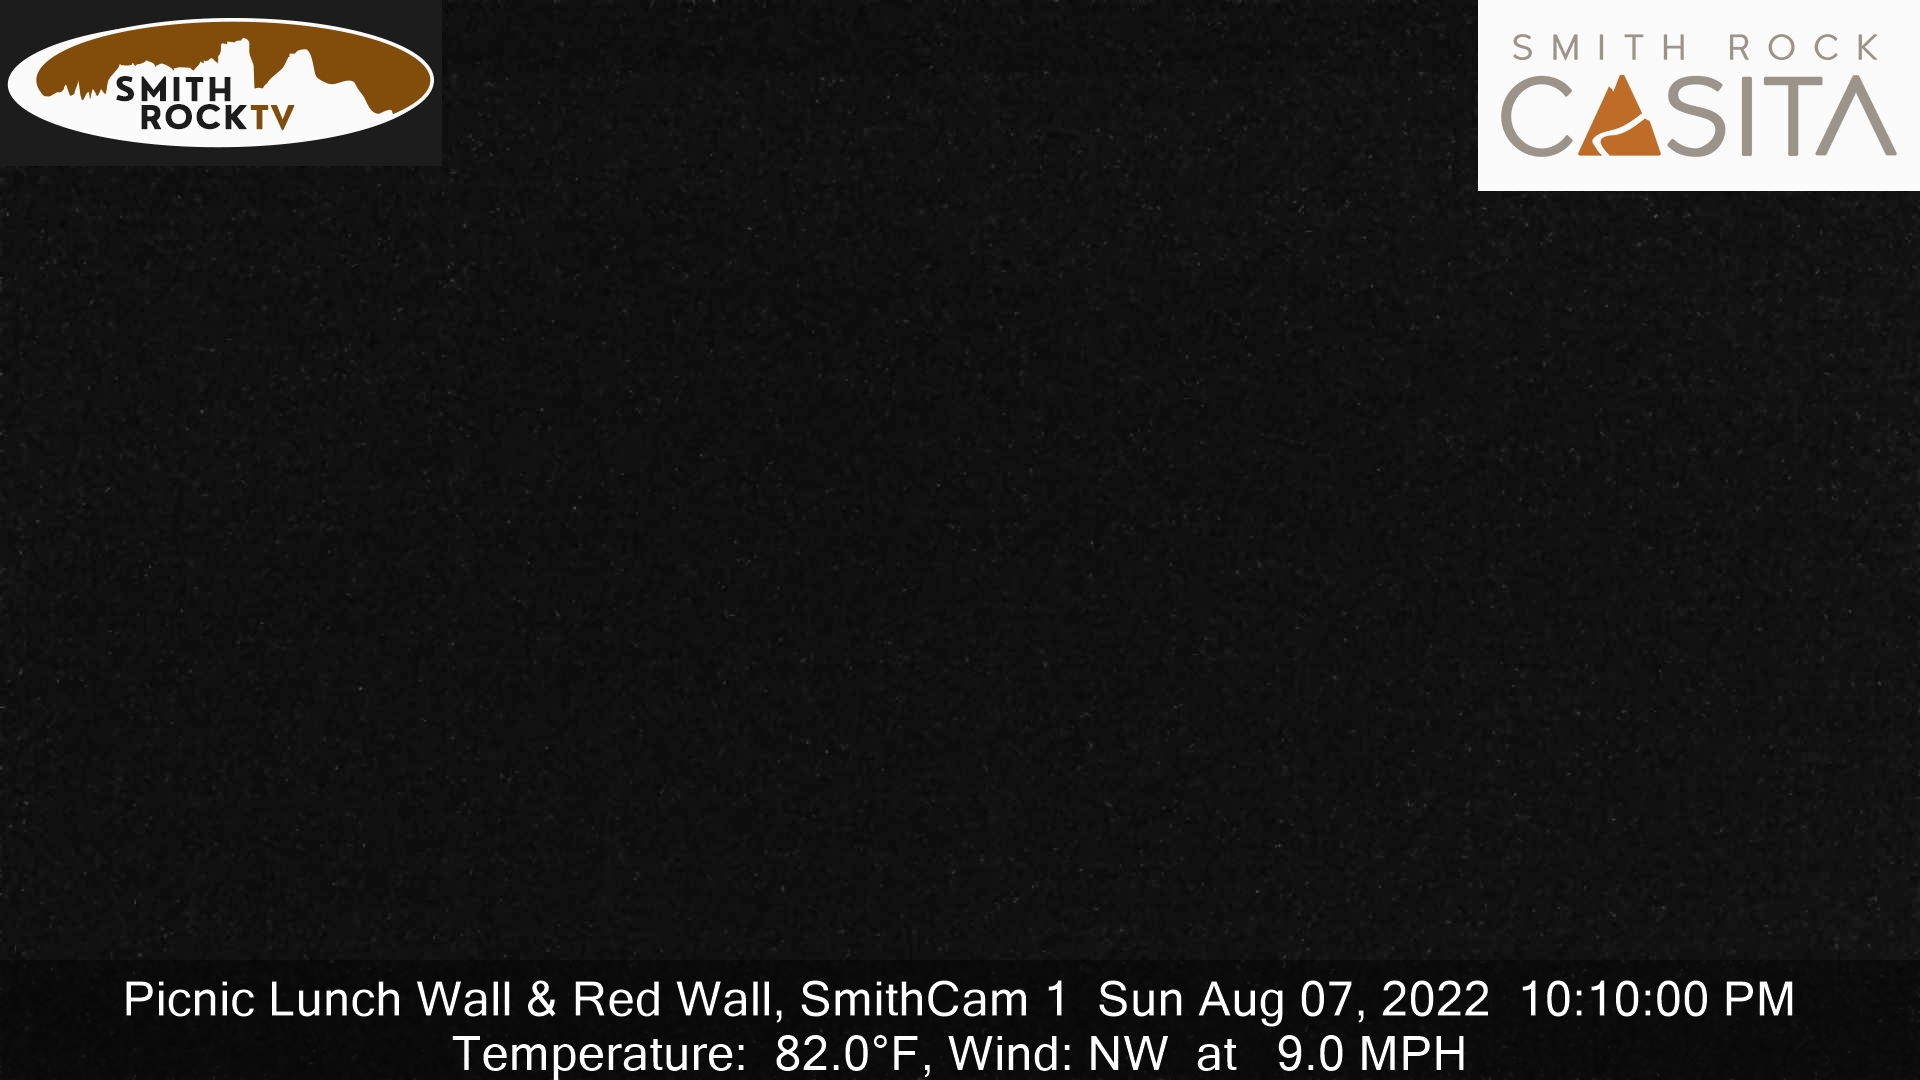 SmithRock.com SmithCam Current Image